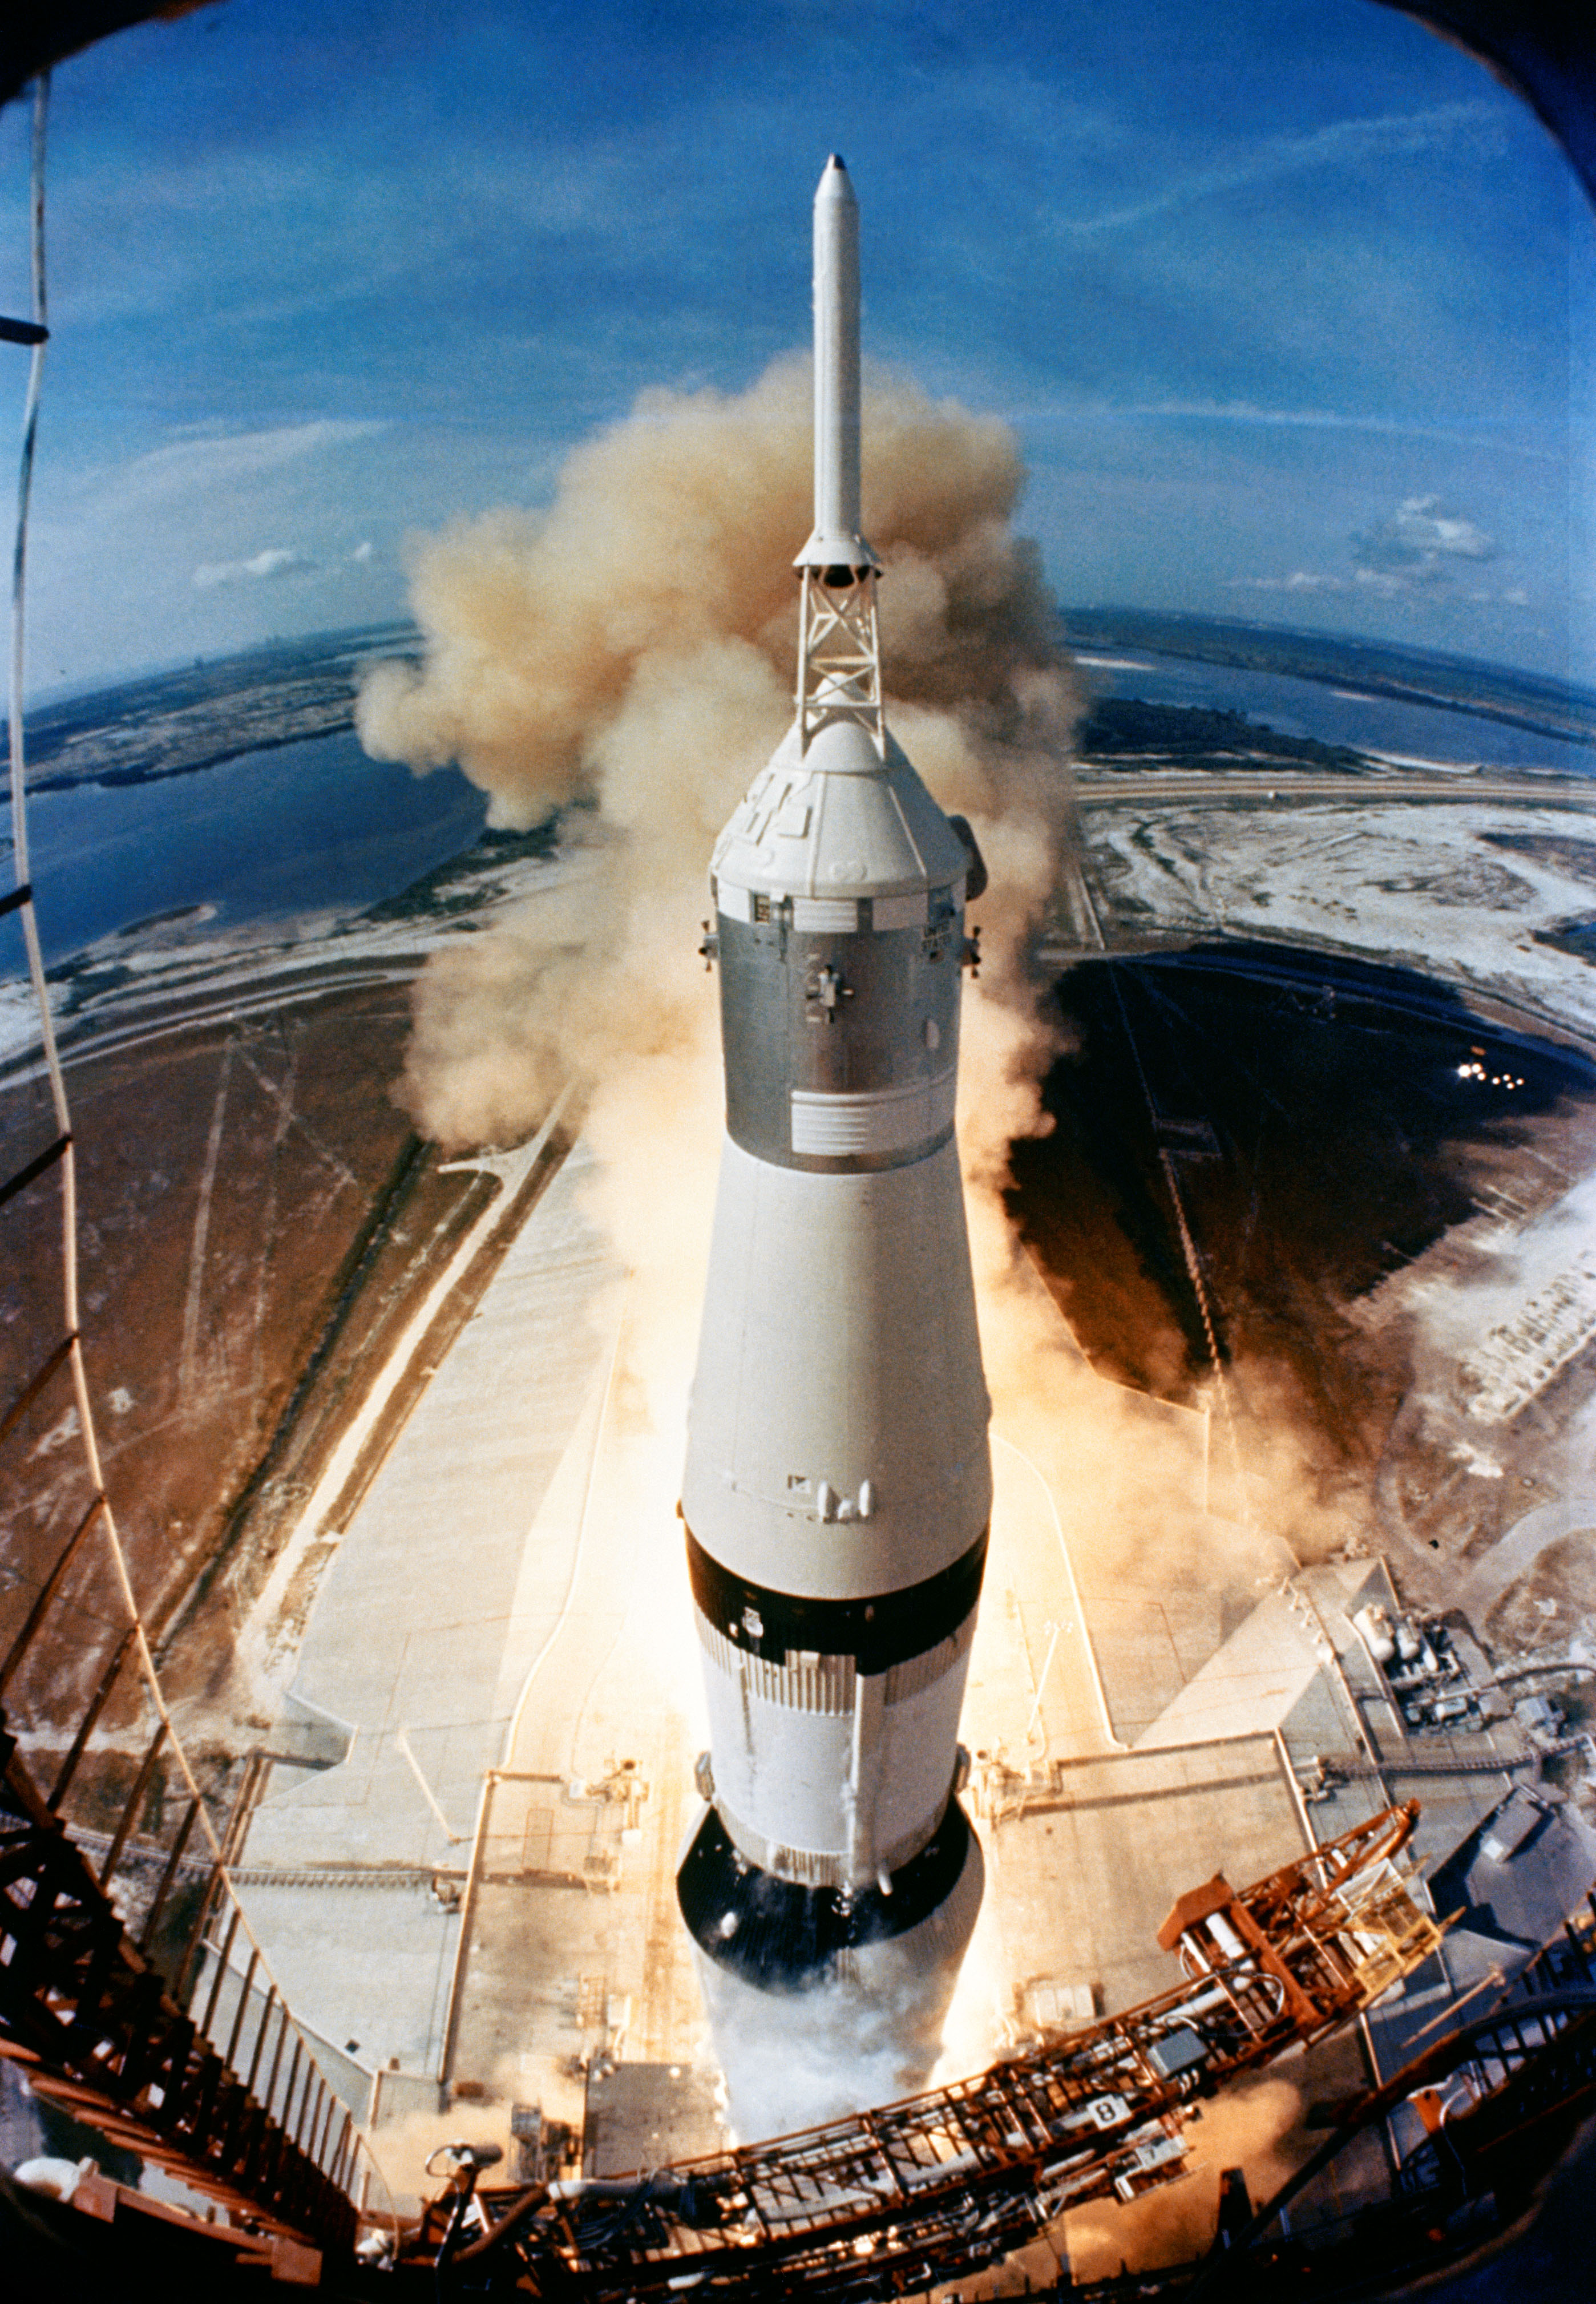 Hydra-Electric Switches on Historic 1969 Saturn V Rocket Launch of Apollo 11 Mission to Moon